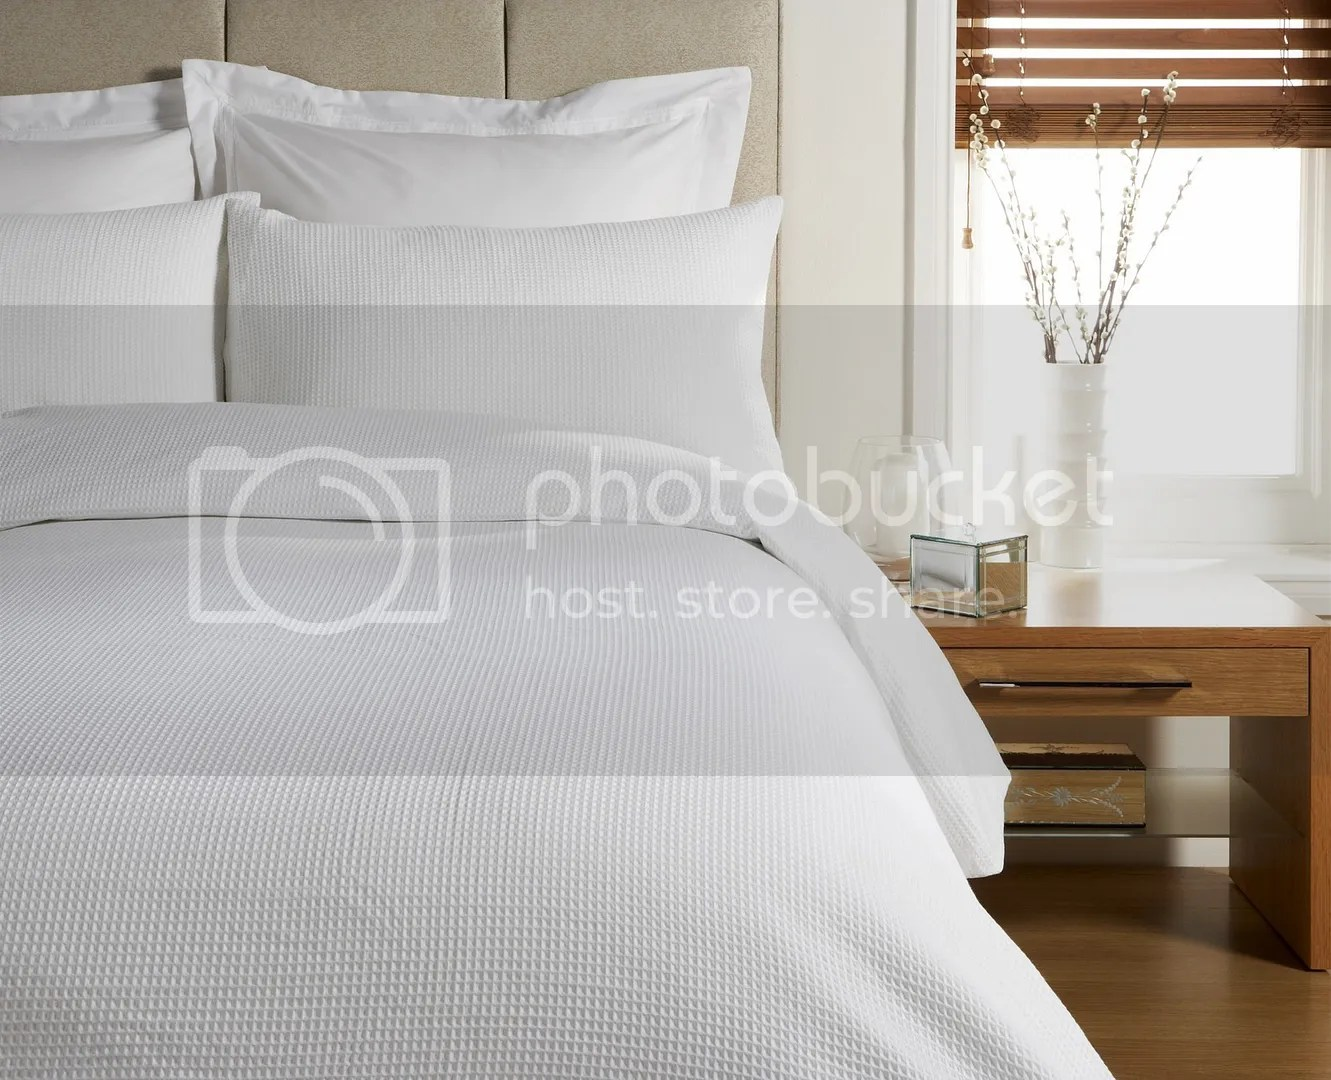 Waffle Egyptian Cotton 300 Thread Duvet Cover Bed Set Ebay